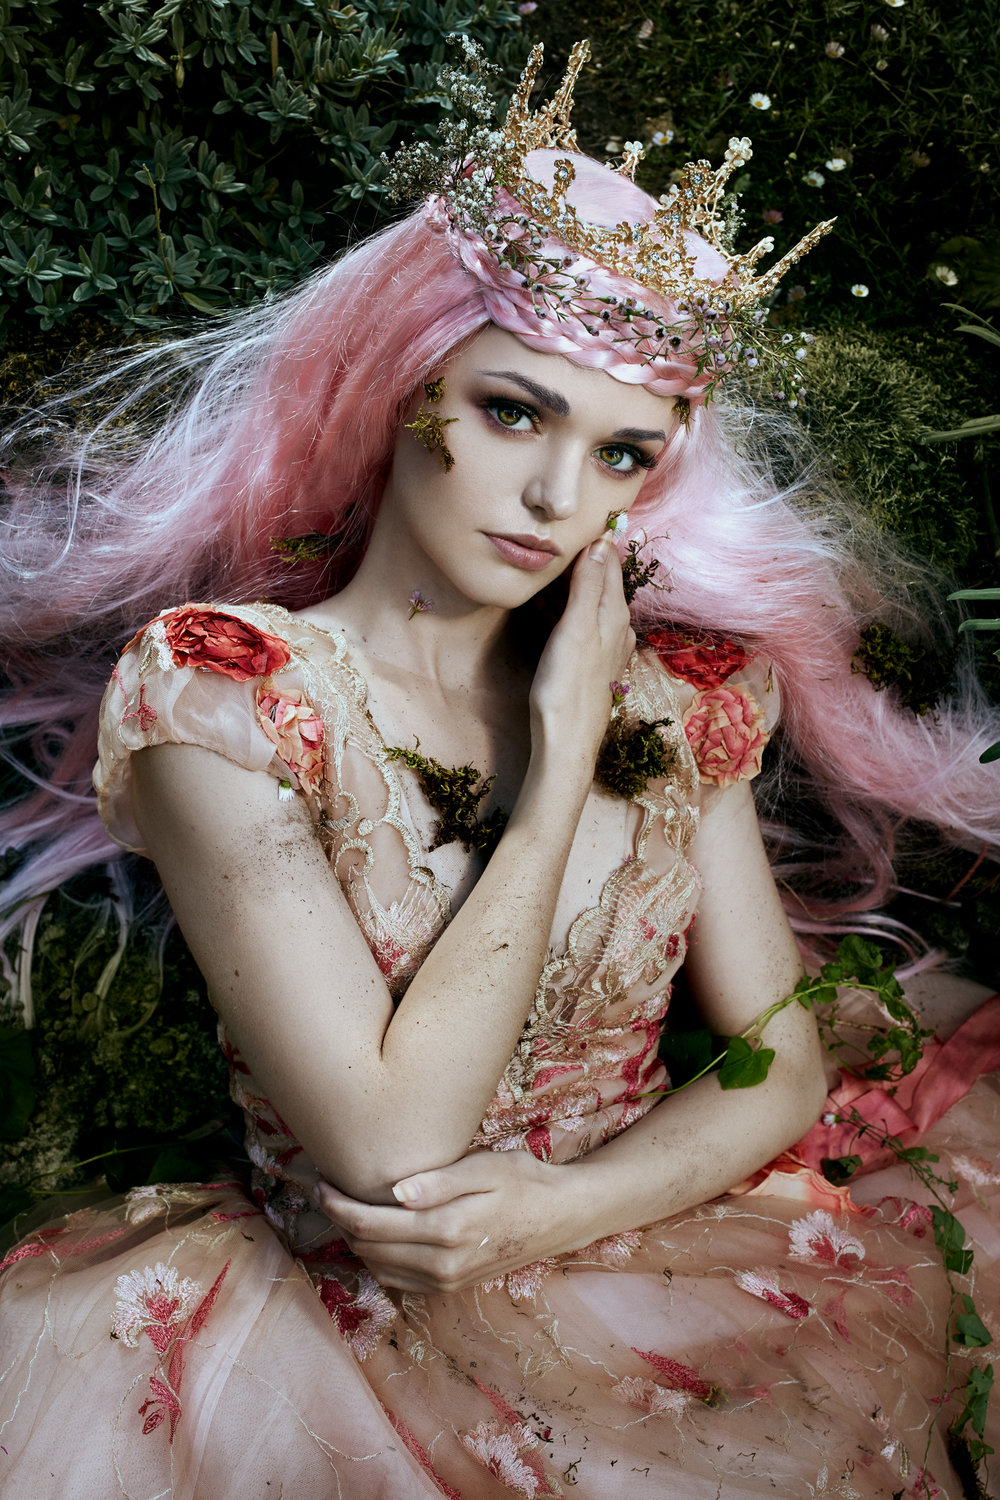 Bella_Kotak_Profoto_Canon_Fairytale_Fantasy_Photography_Portrait_Portraiture_Flowers_FLoral_Queen_Princess_Disney_Fashion_Editorial_A1_Lighting_Pink_Hair_Magical_Ethereal_Solstice_Retouch_1.jpg